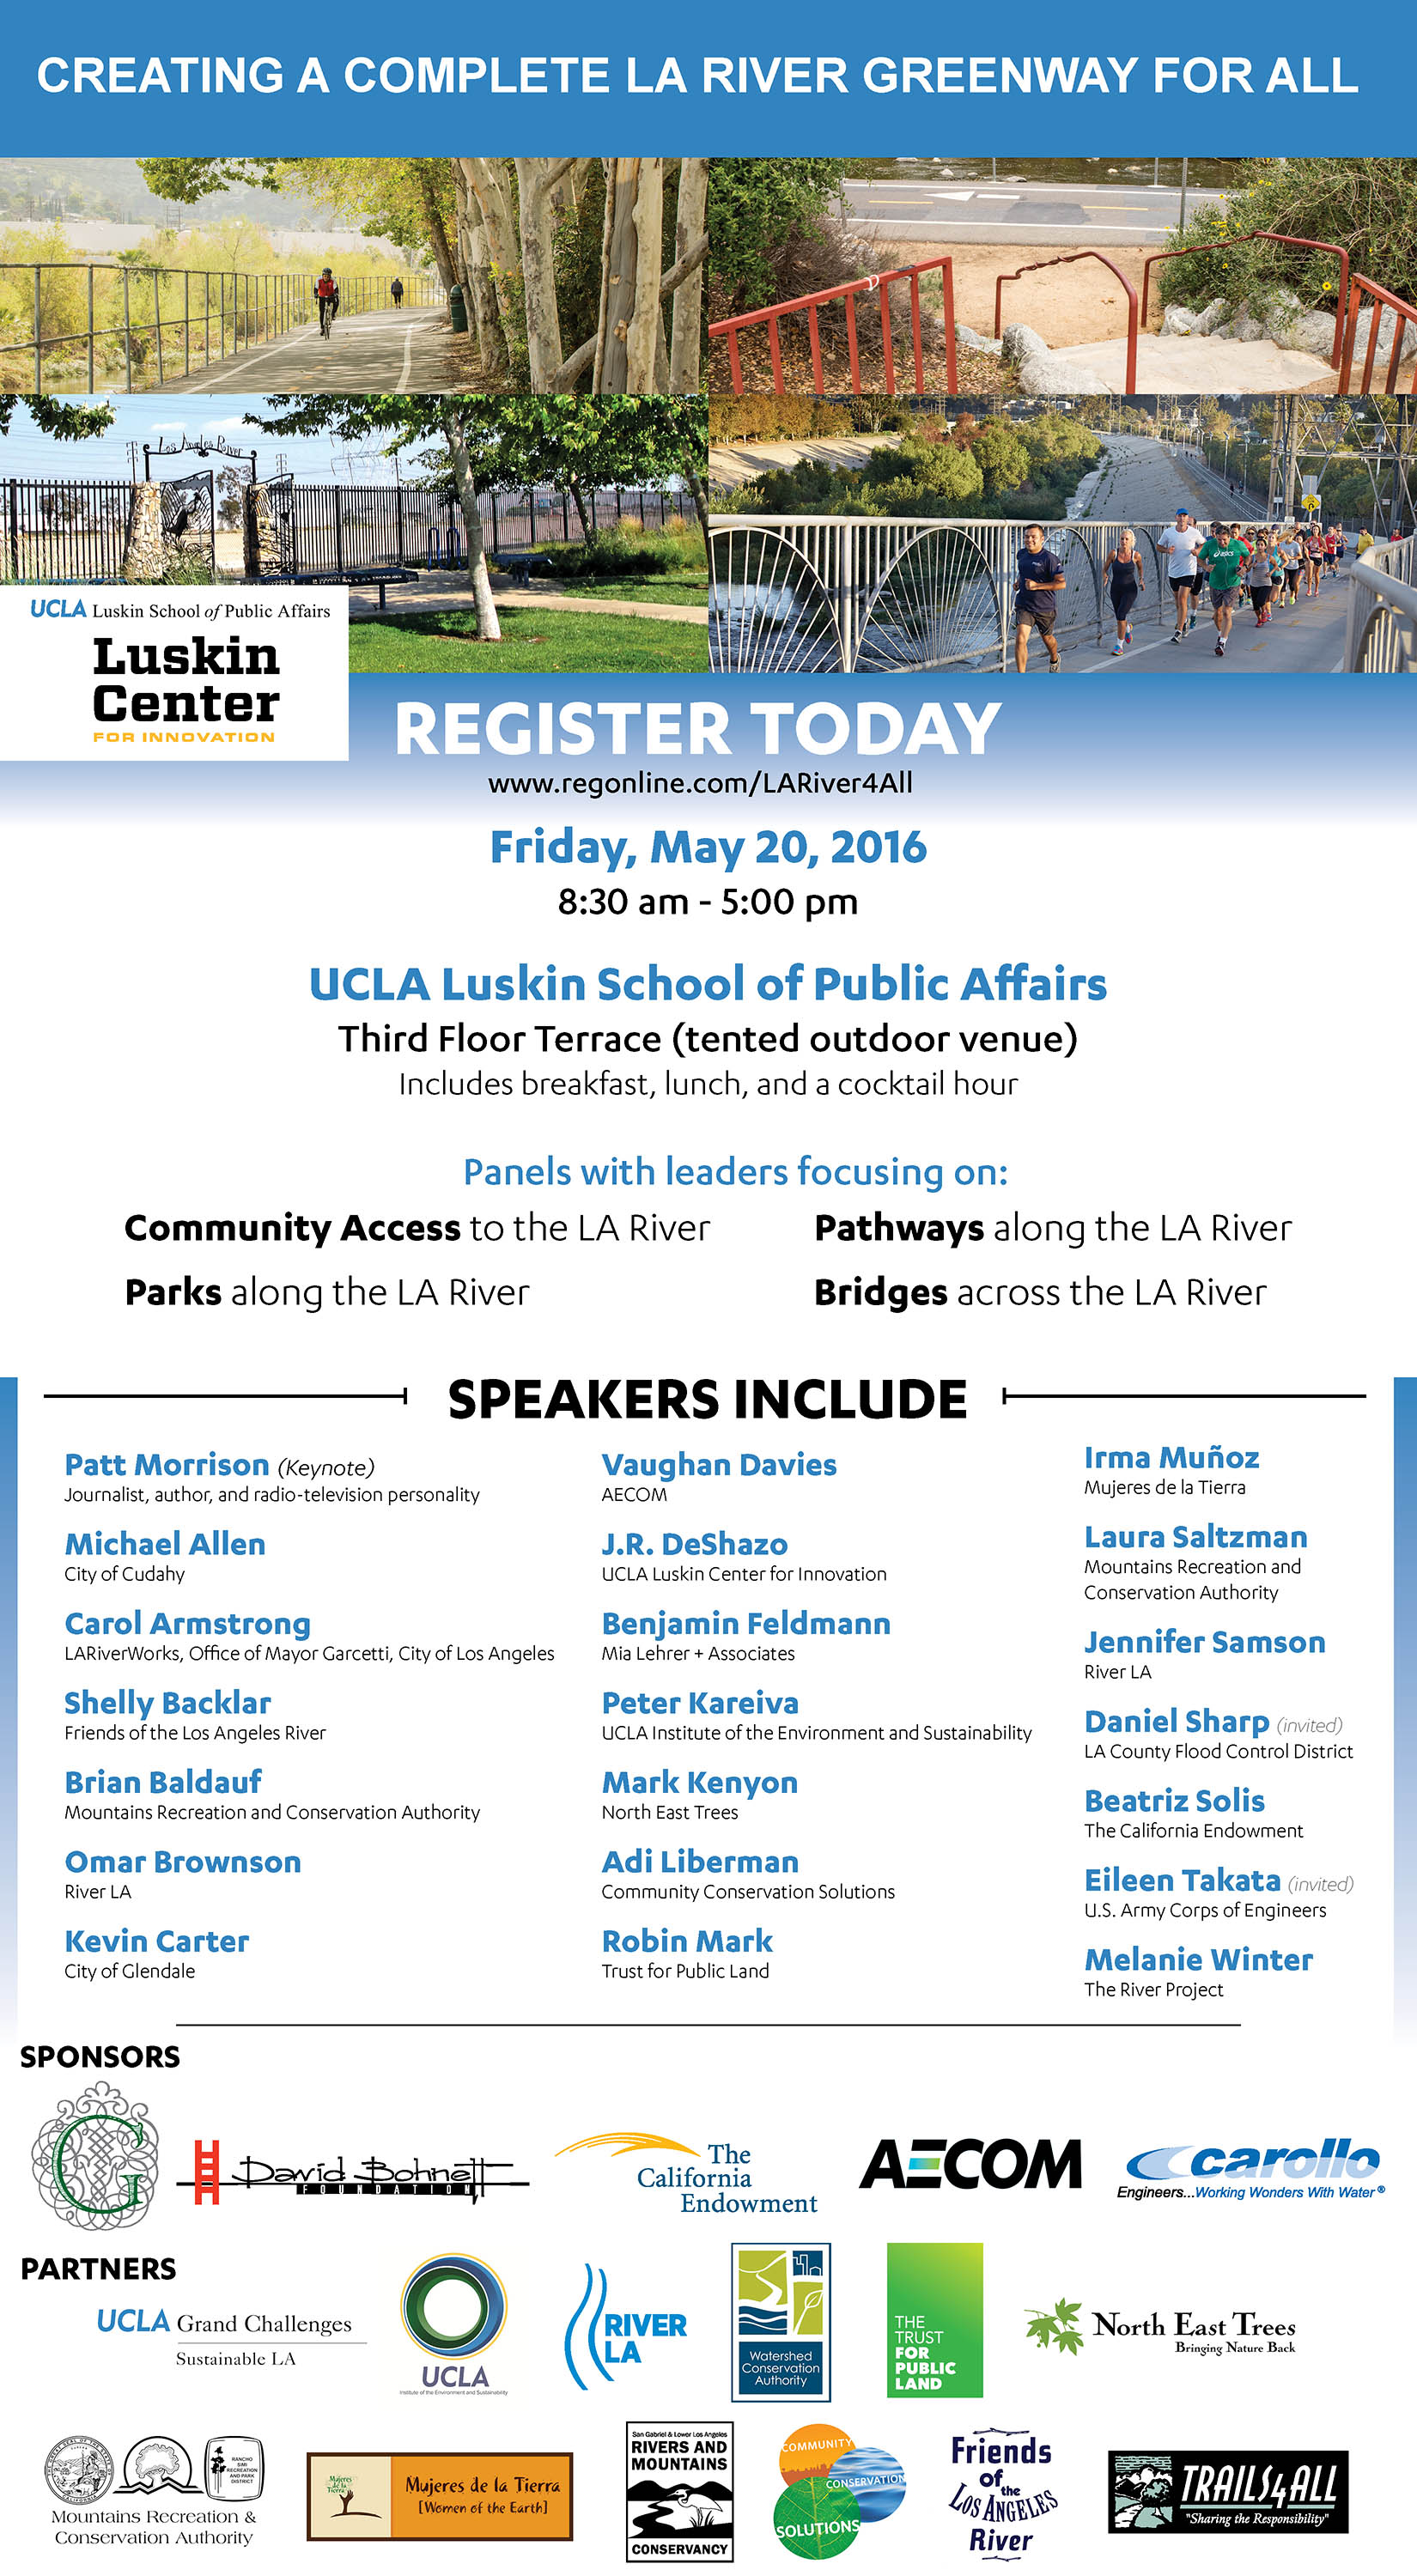 LA_River_Event_Flyer_051316_WEB.jpg